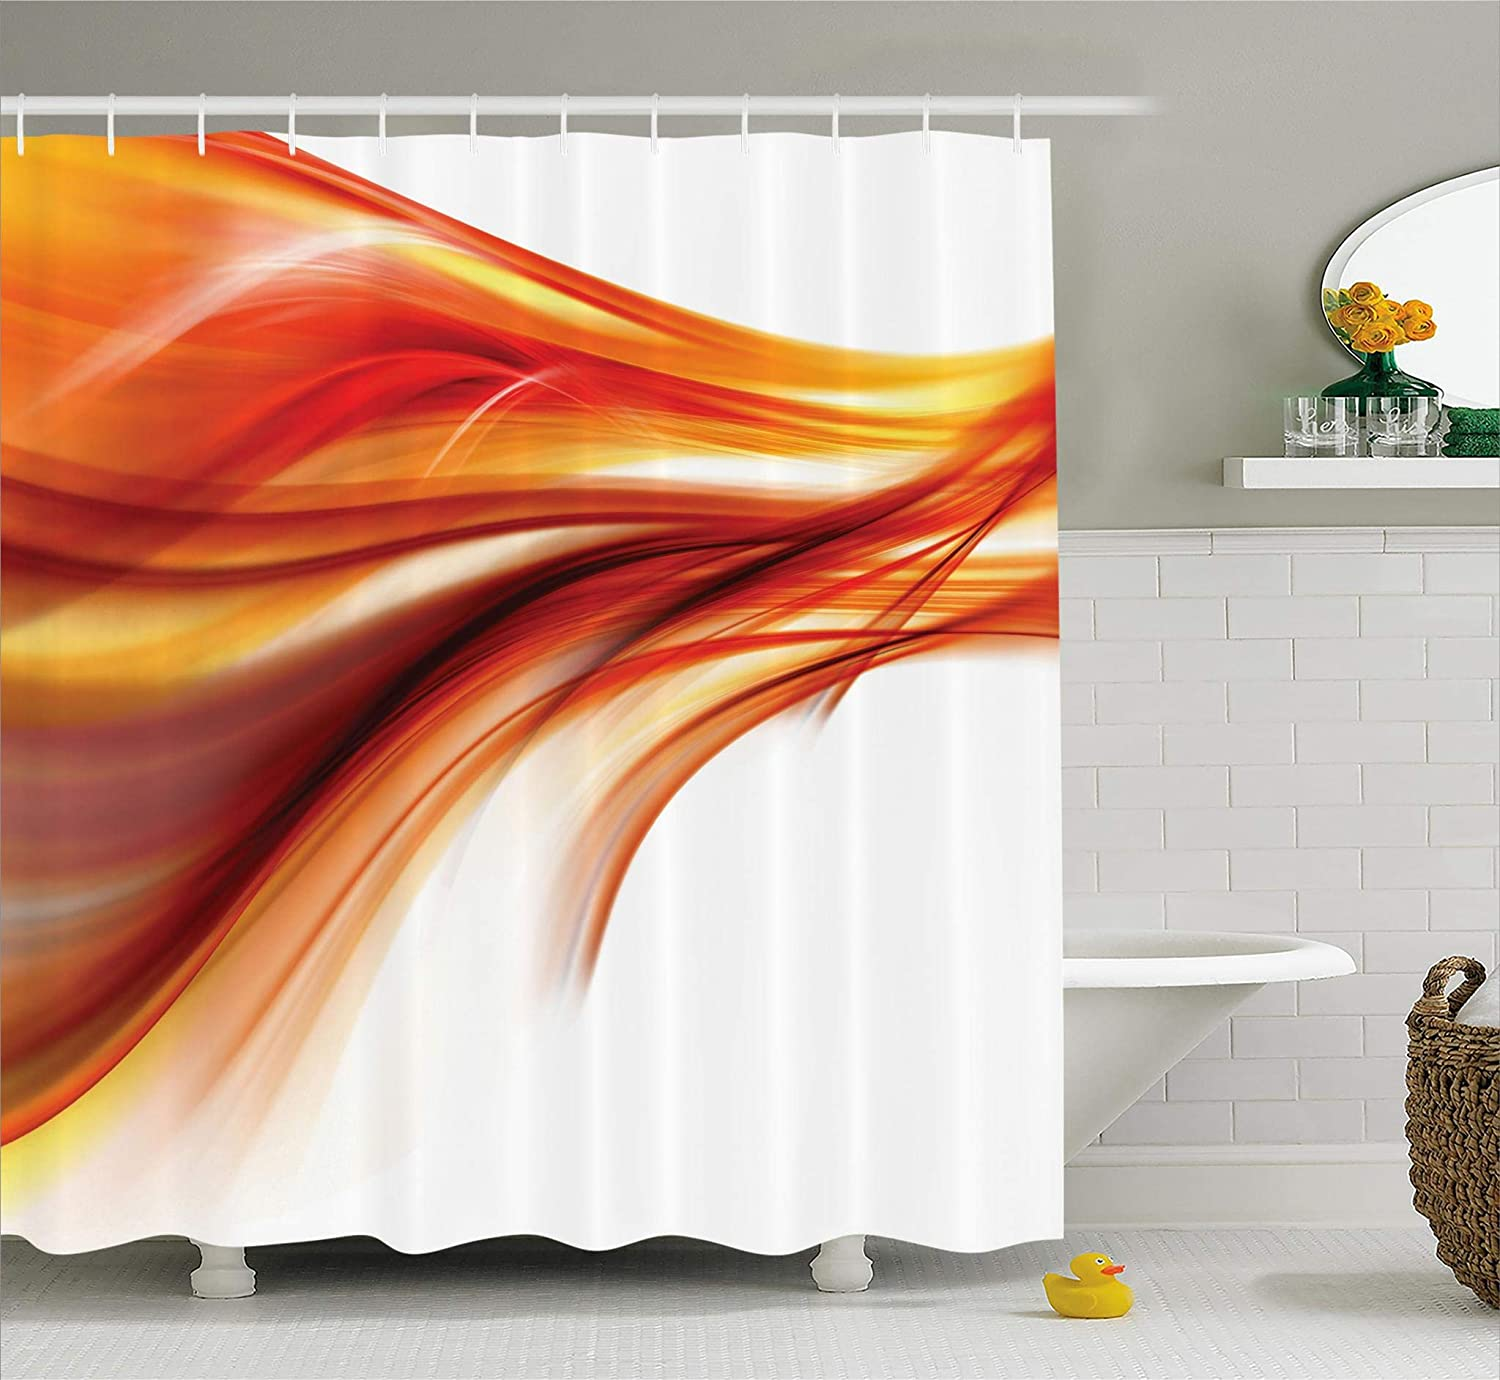 Ambesonne Abstract Shower Curtain, Modern Contemporary Smooth Lines Blurred Smock Art Flowing Rays Image, Polyester Fabric Bathroom Shower Curtain Set, 75 Inches Long, Dark Red Orange